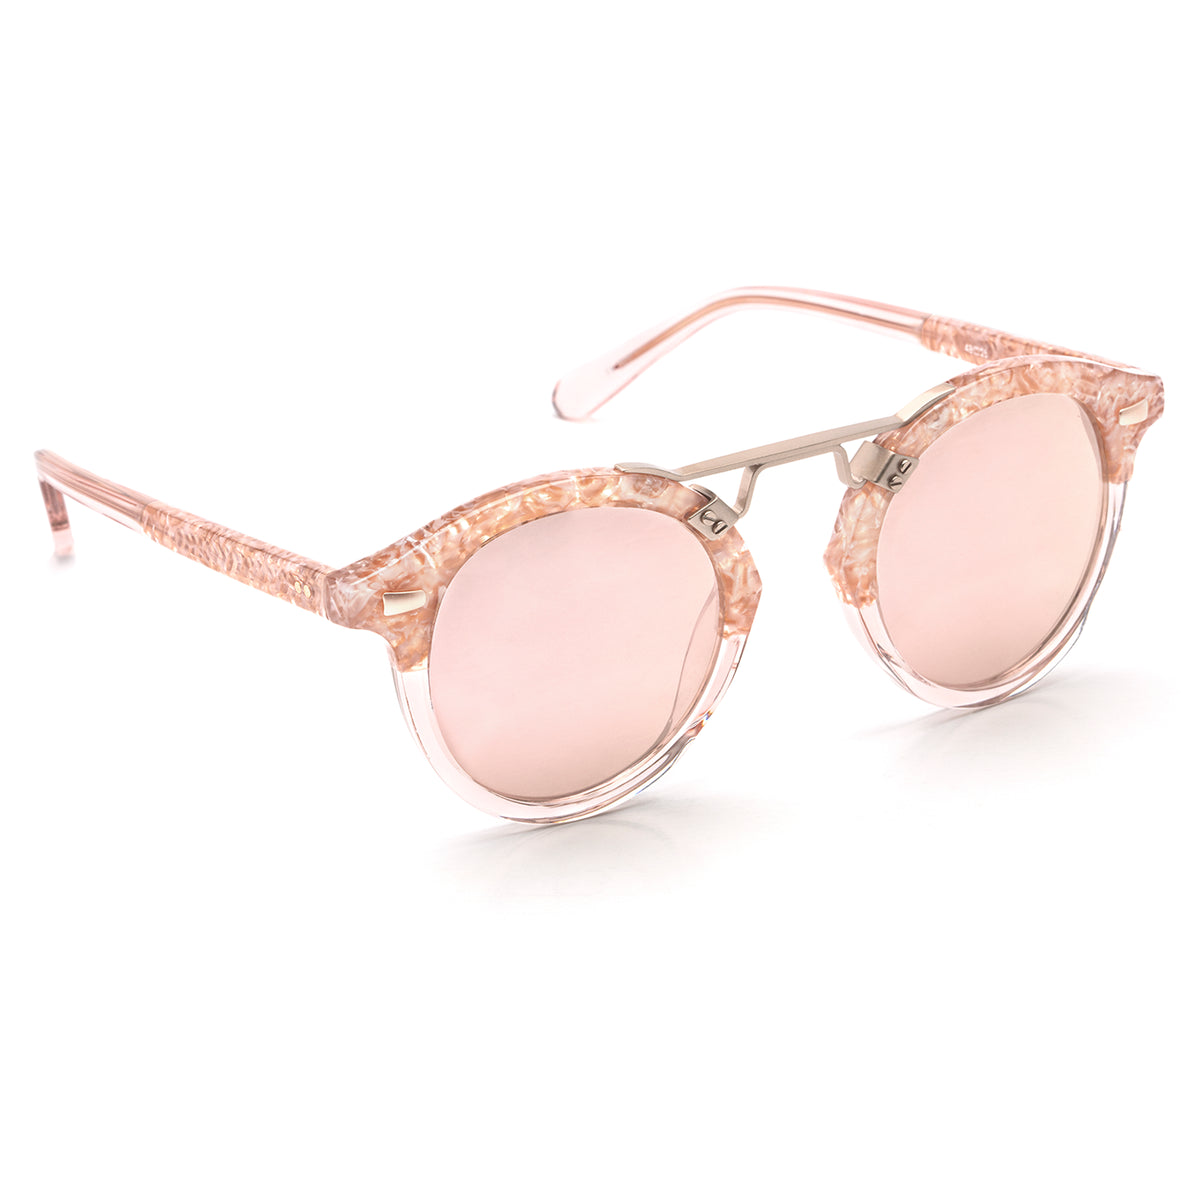 STL II | Camellia to Blush Rose Gold - round Sunglasses handcrafted from acetate featuring 24K gold hardware.